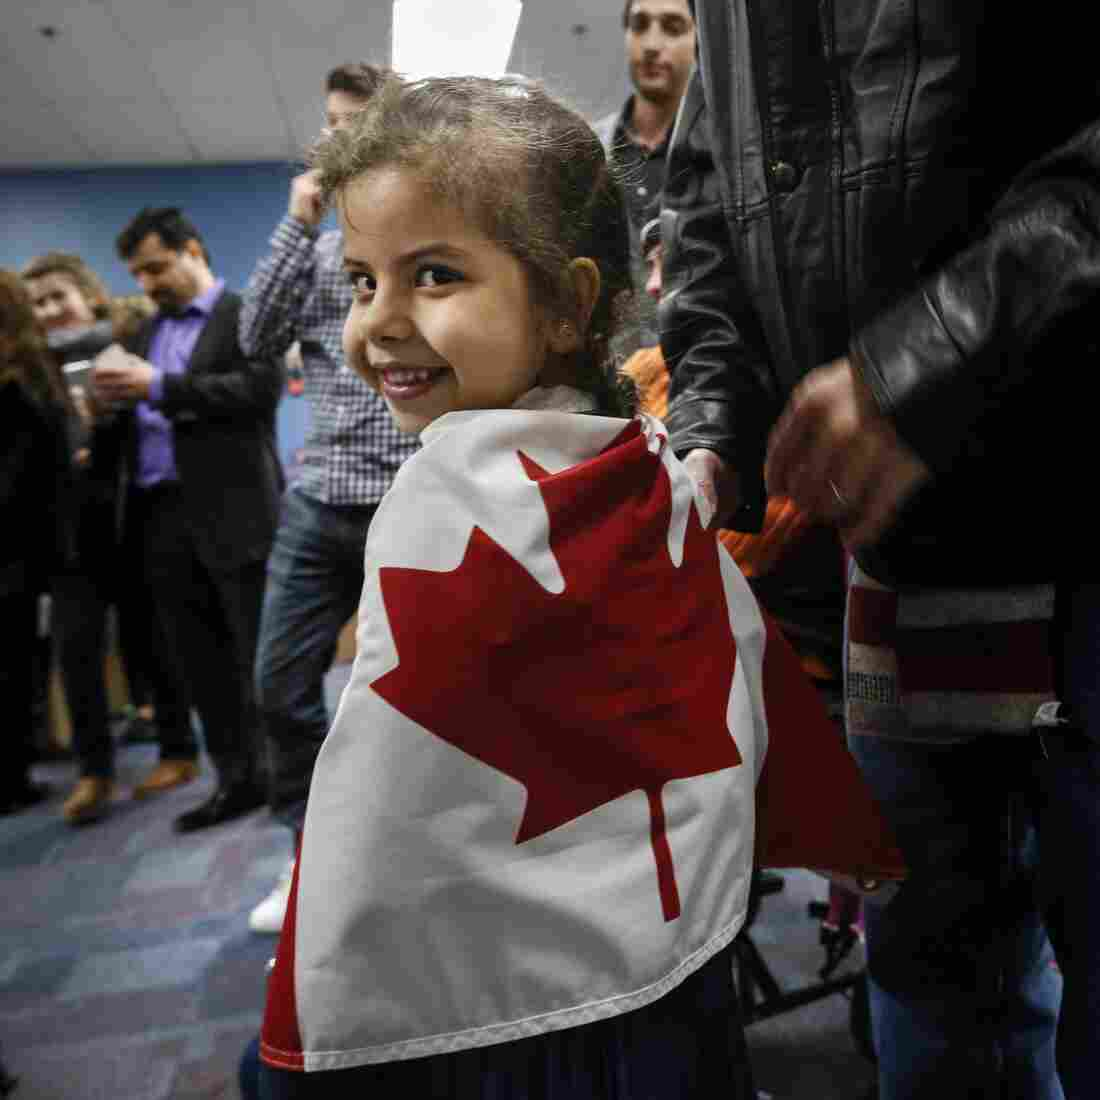 Reemas al-Abdullah, 5, wrapped herself in a Canadian flag before a dinner hosted by Friends of Syria at the Toronto Port Authority in December.